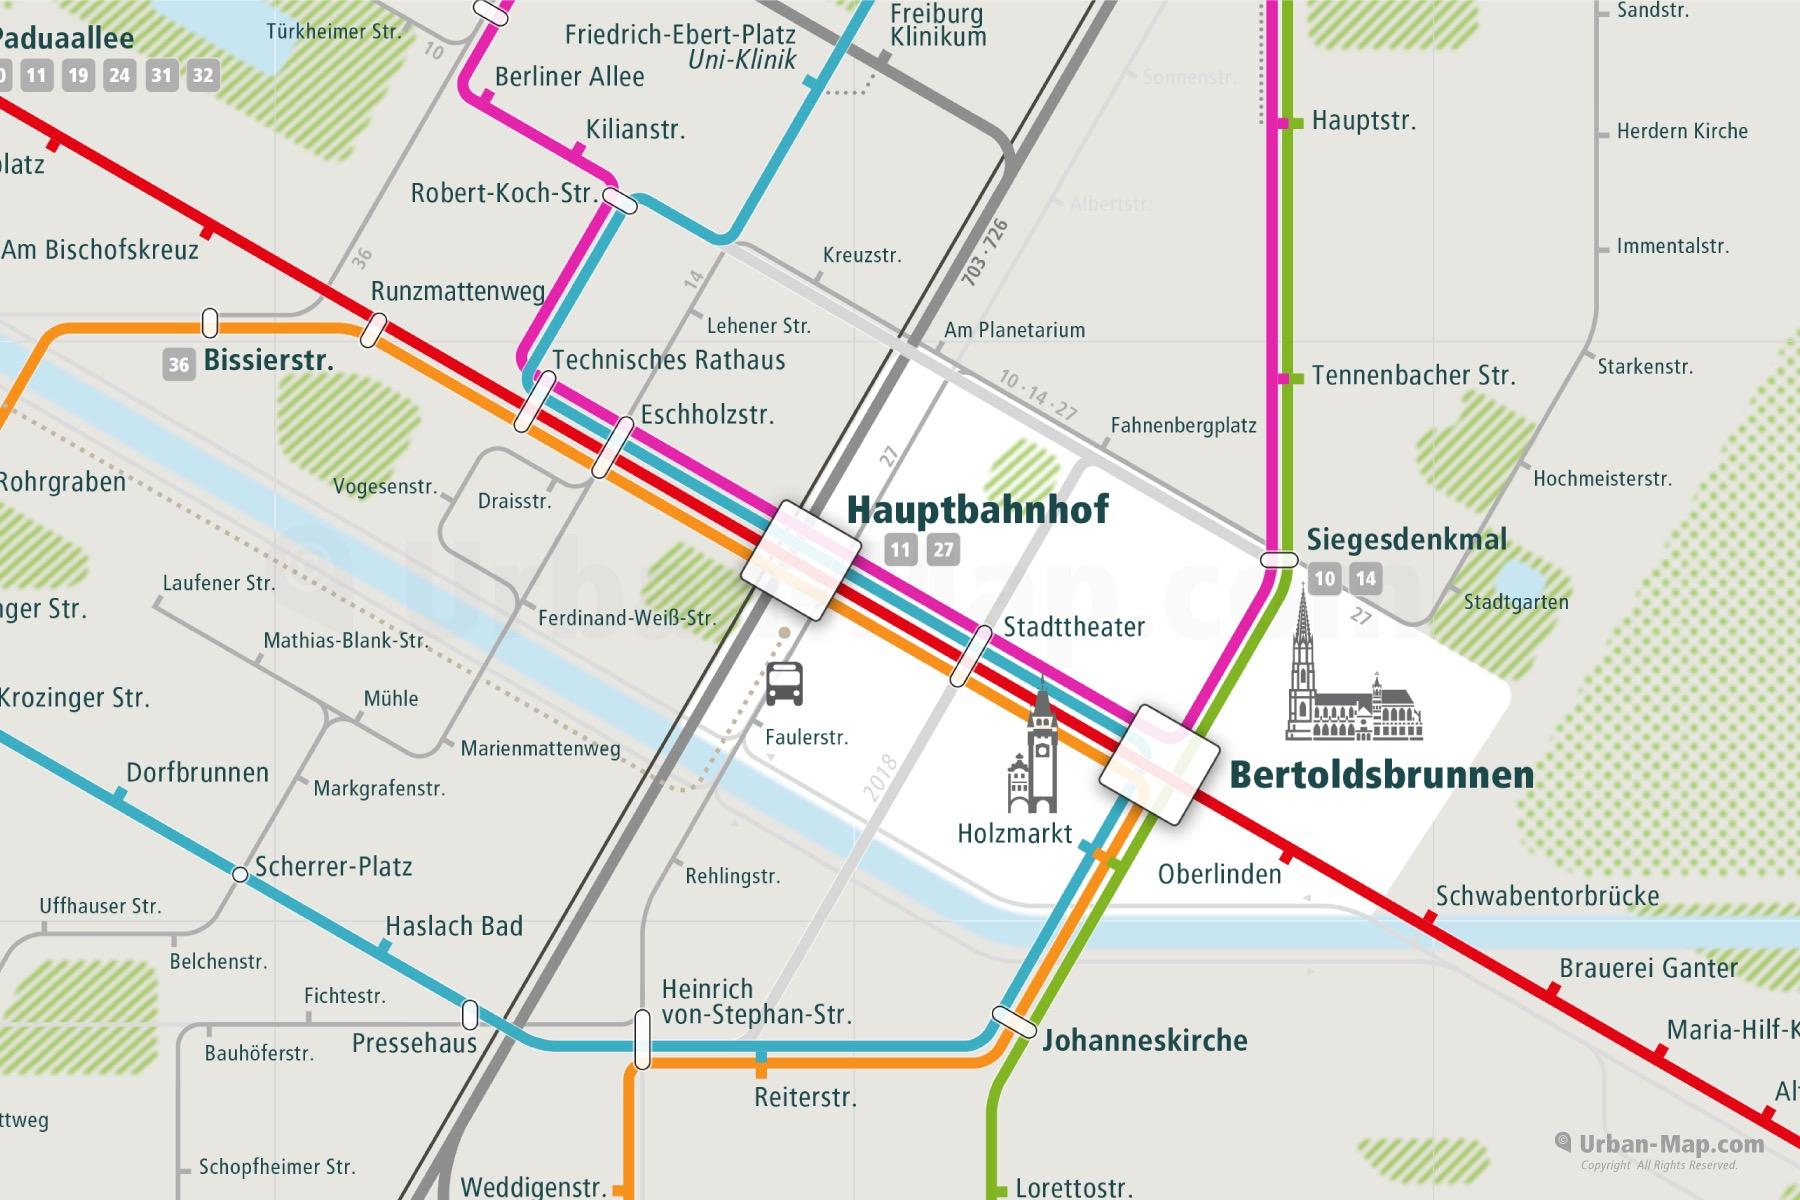 Freiburg Rail Map A Smart City Map Even Offline Download Now